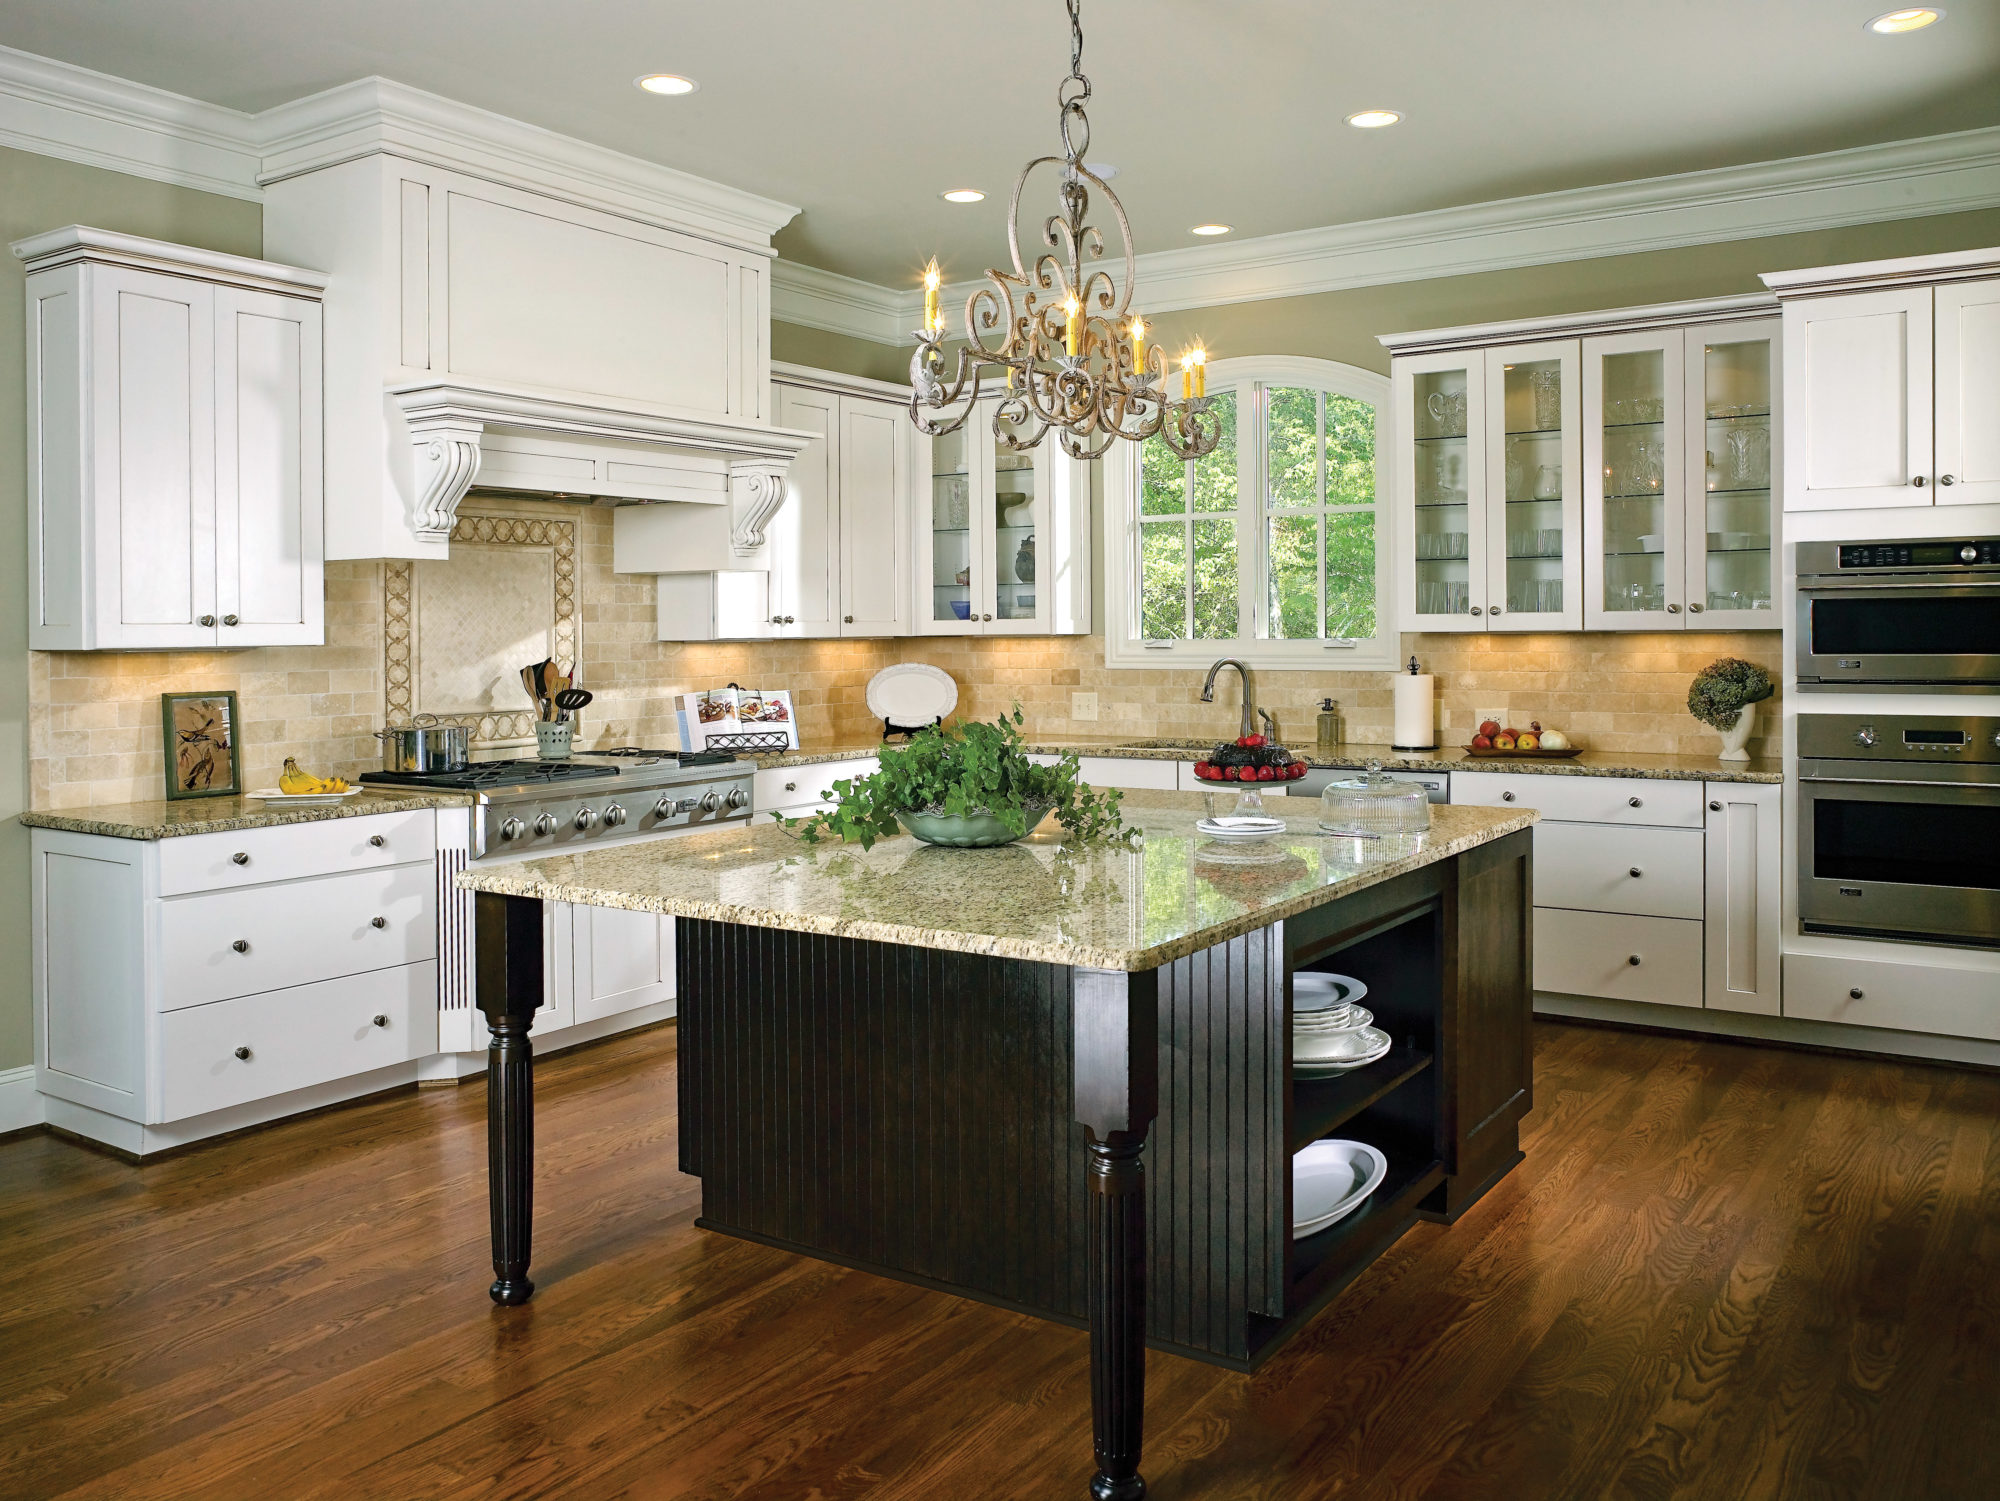 Creating A Kitchen Island: Moving Into A Fixer Upper? 4 Ways To Create Dramatic